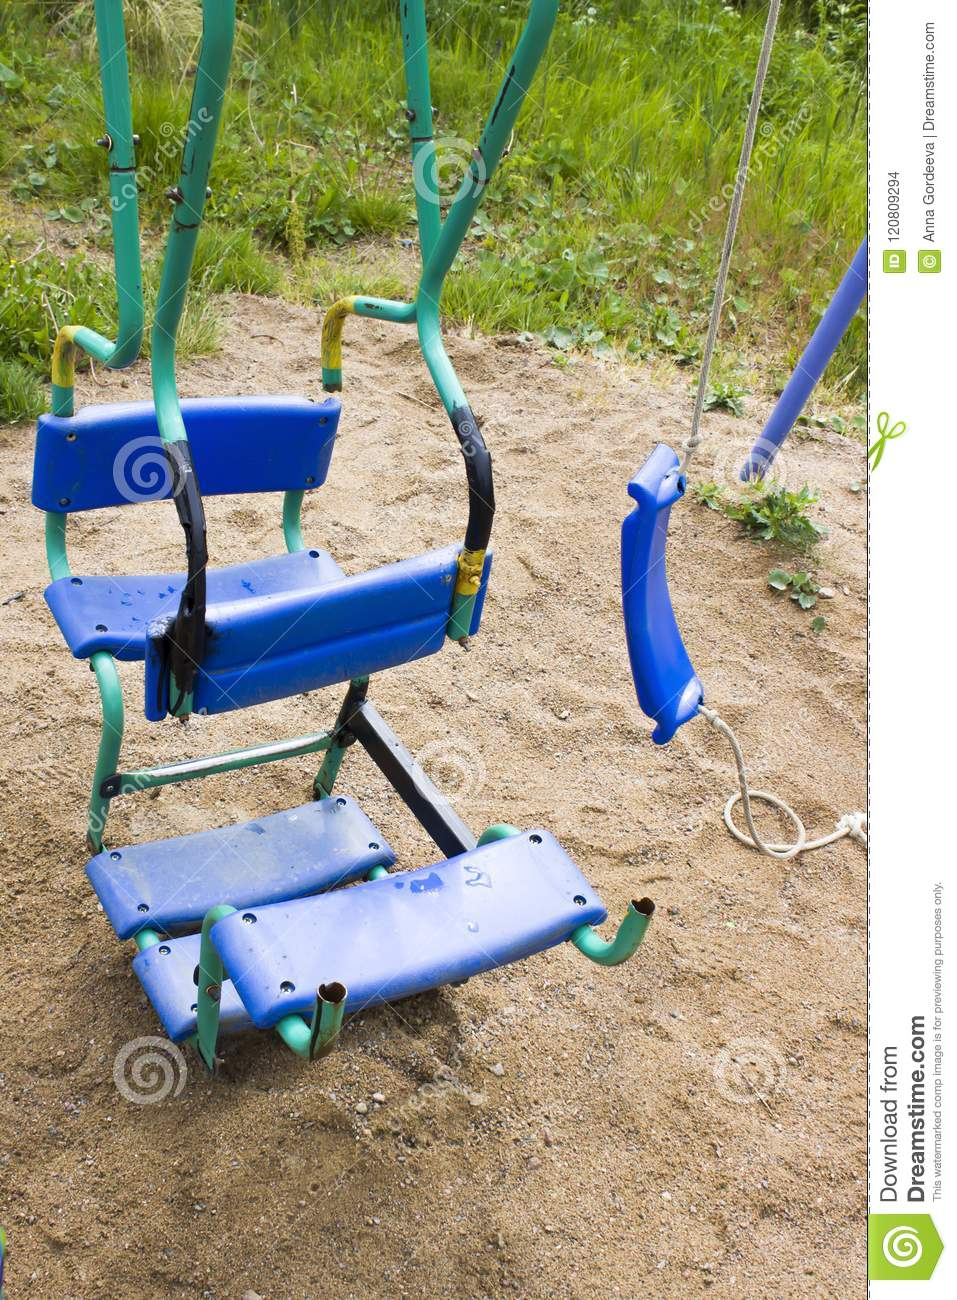 The Unsafe Child Less Outdoor Play Is >> Broken Plastic Children S Swing In A Playground Painted Welding On